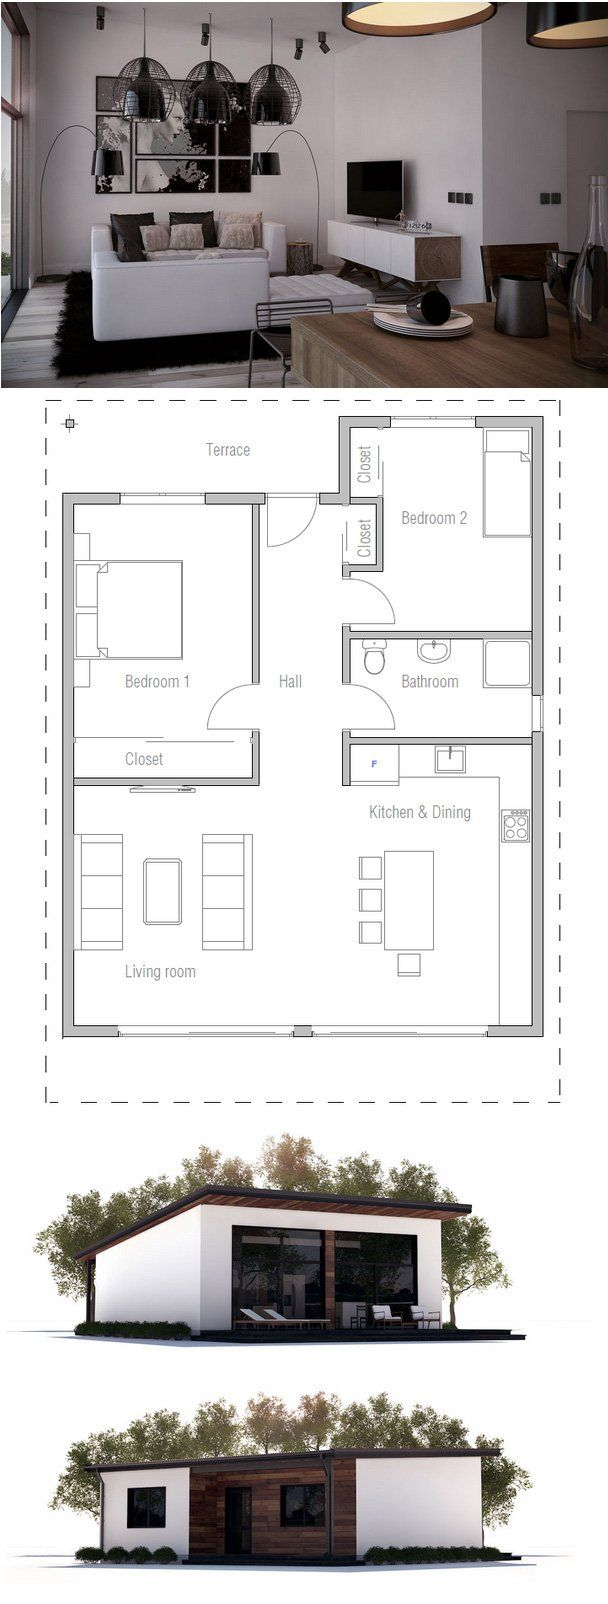 883sq.ft. Home Plan from ConceptHome.com